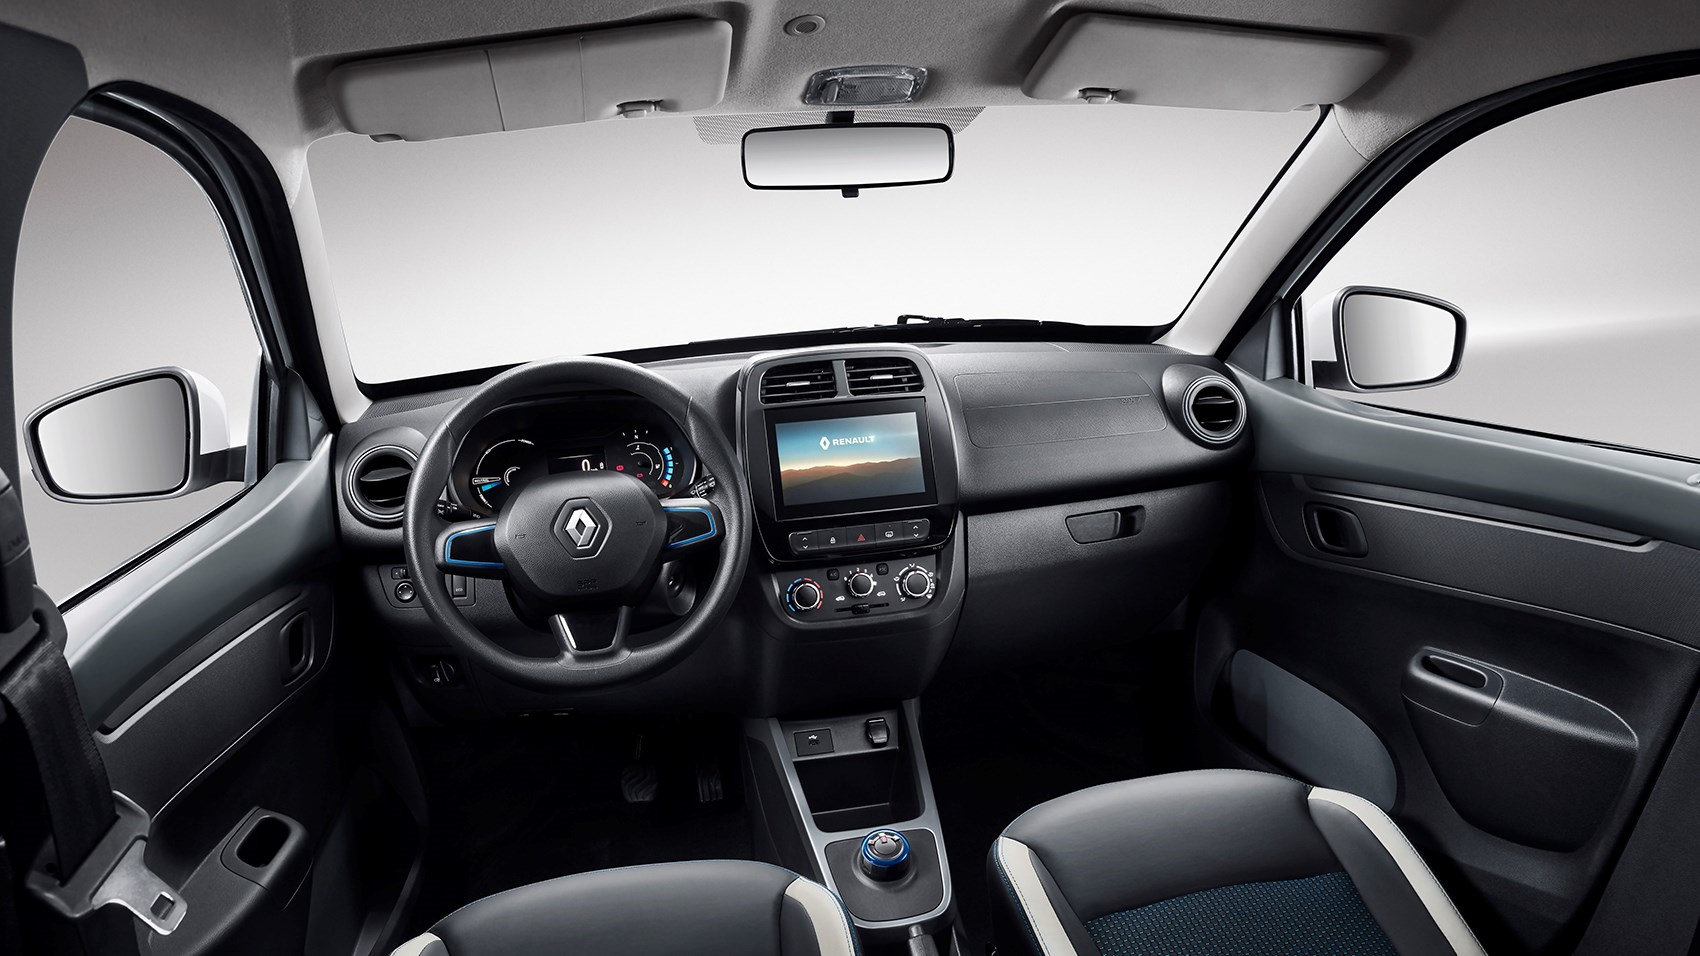 Renault City K-ZE interior - the basis for the Dacia Spring's trim?